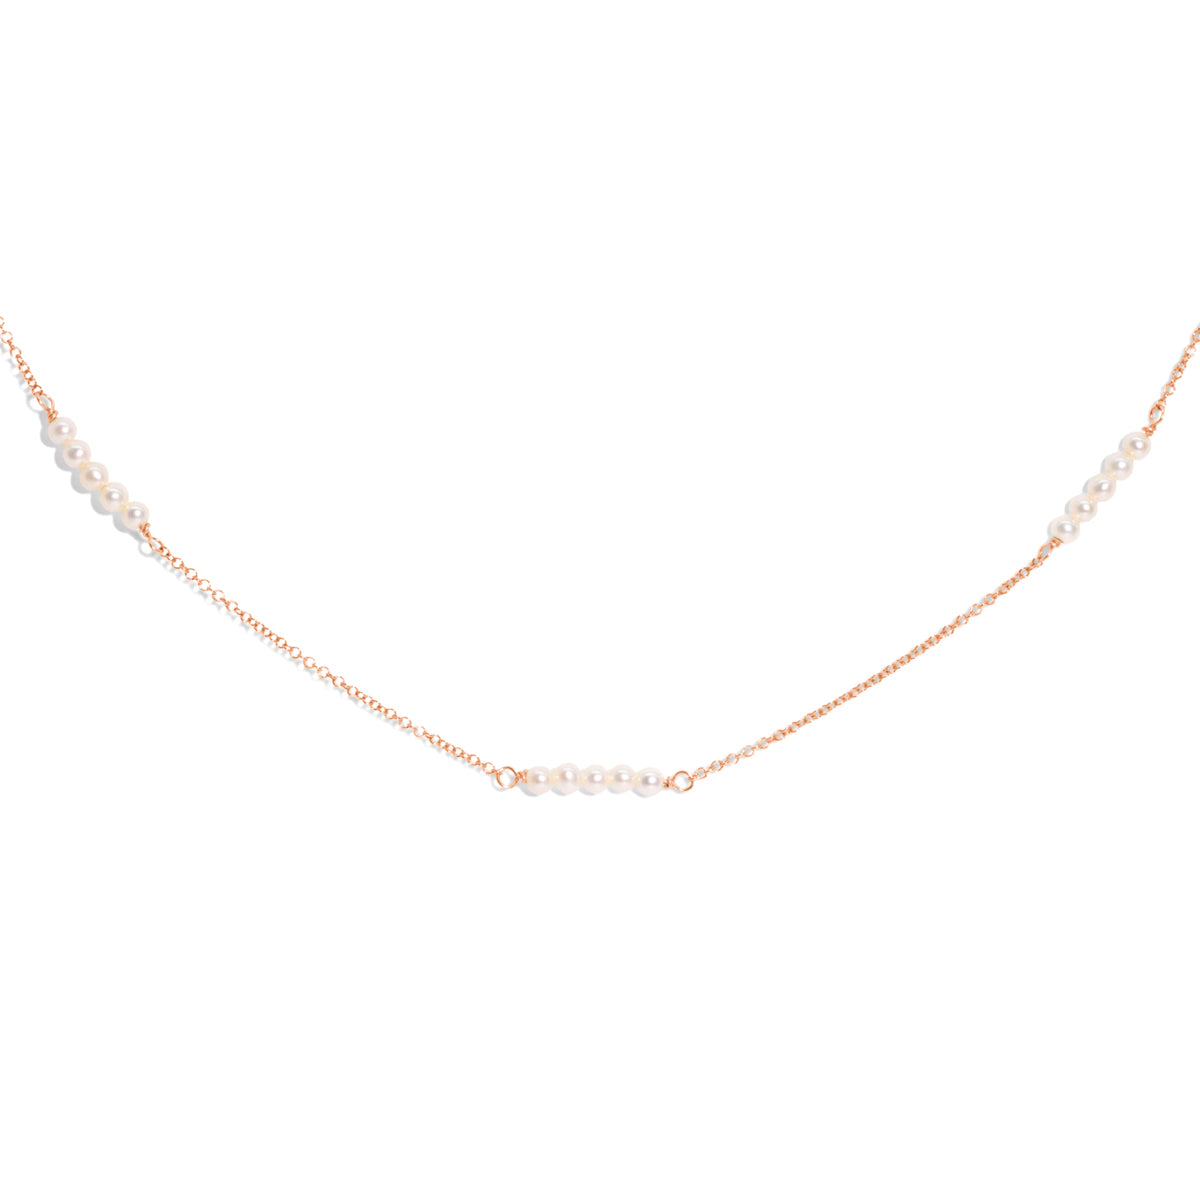 The Rose Gold Pearl Trickle Necklace